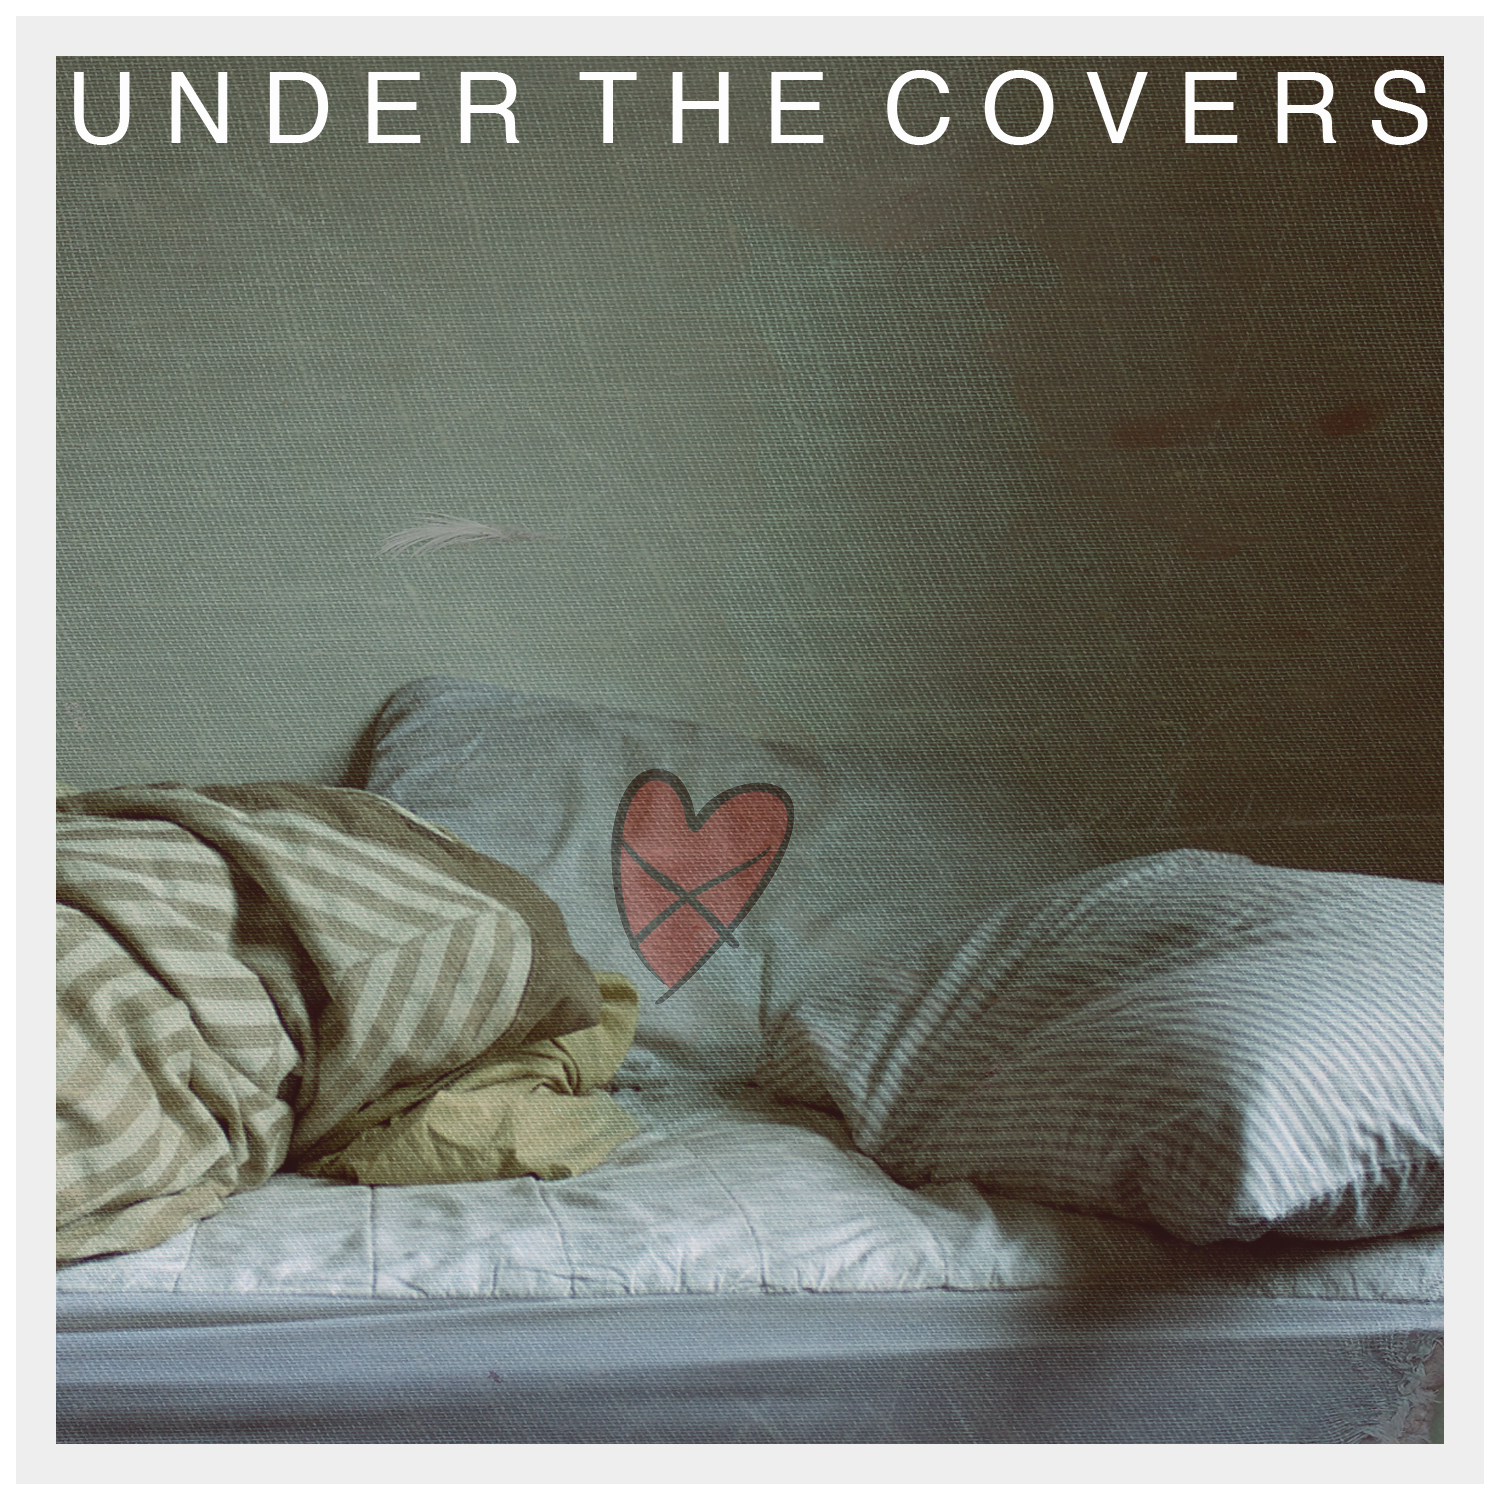 VARIOUS ARTISTS   UNDER THE COVERS    Listen HERE